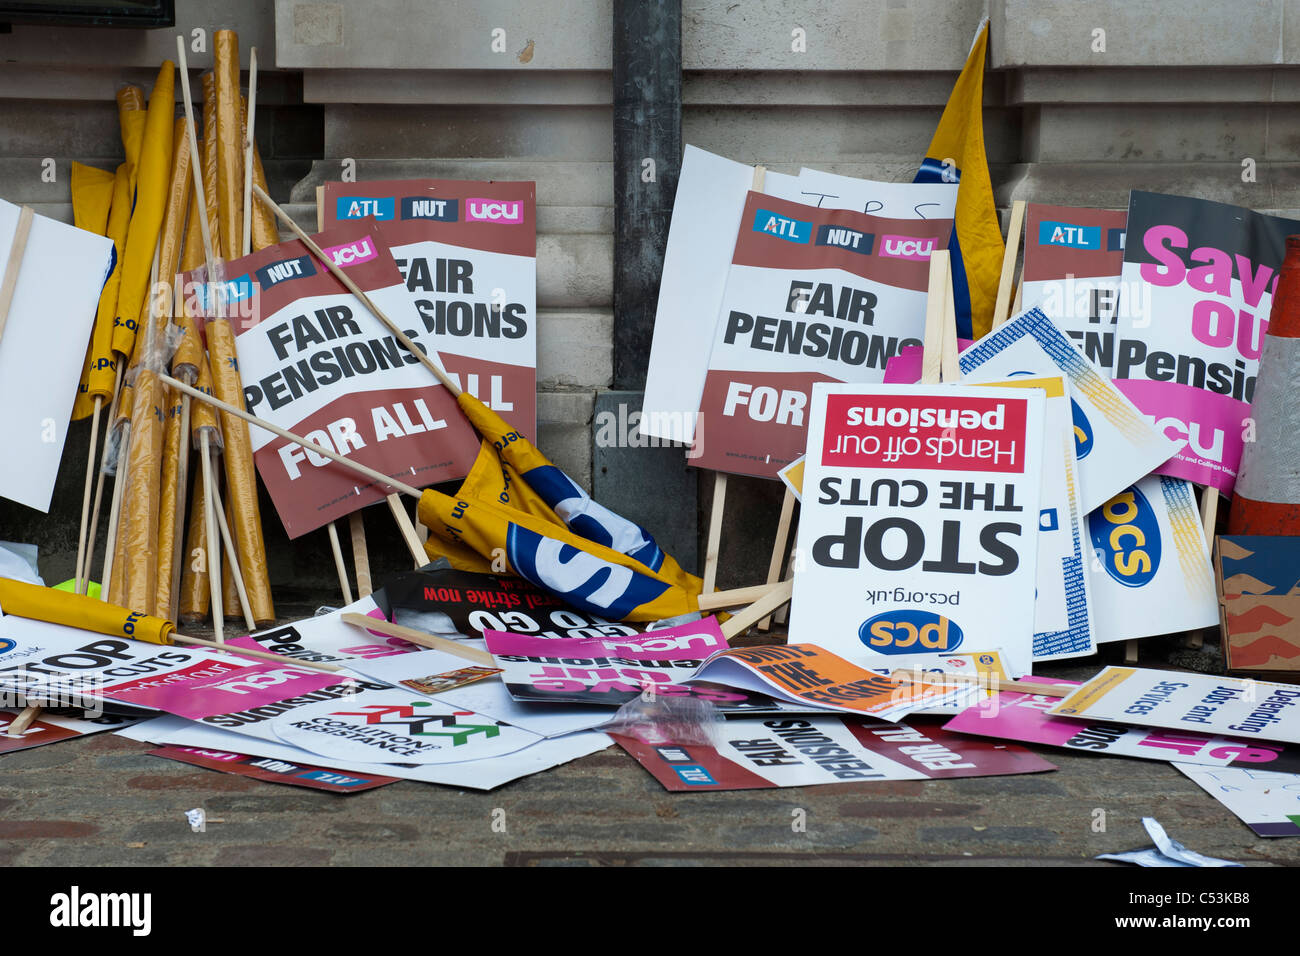 A march organised by the PCS union is joined by many others. It marks a day of public sector strikes over pension - Stock Image